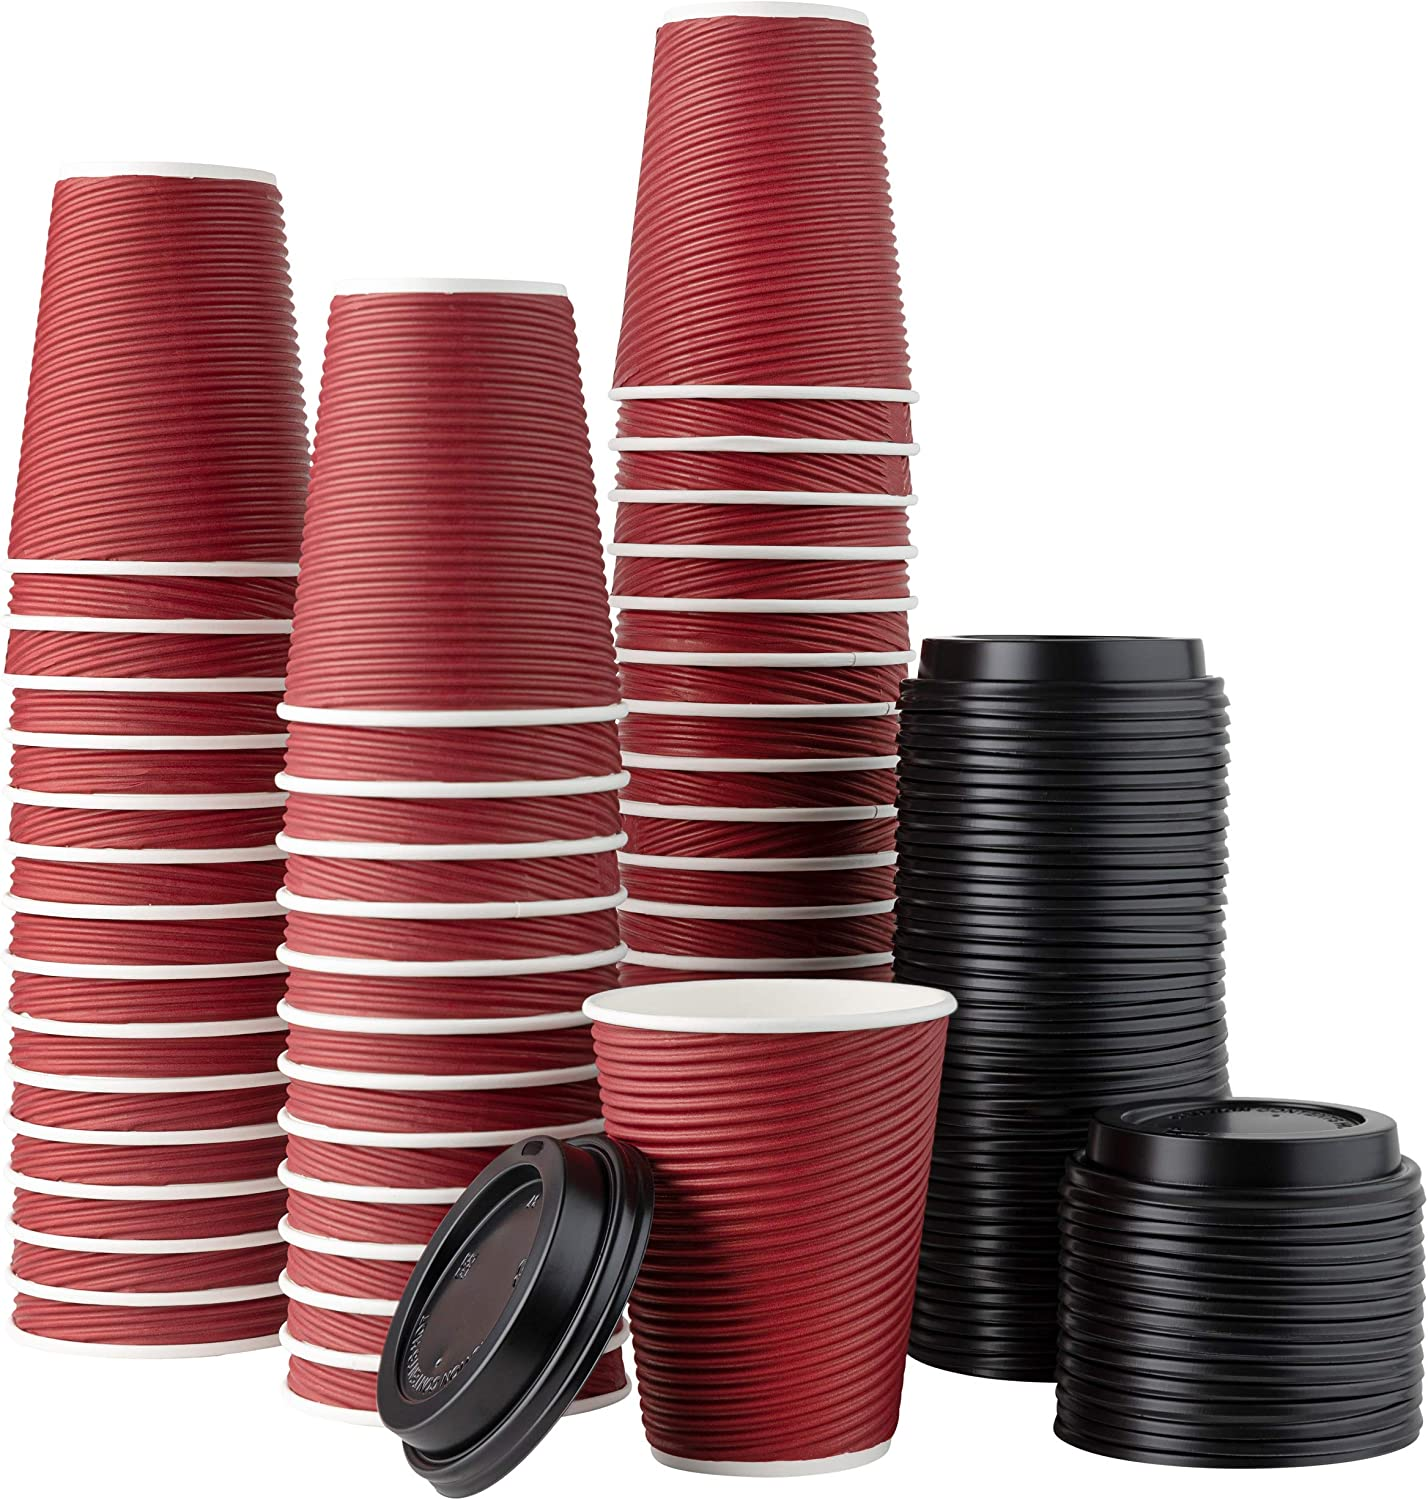 [50 Sets - 12 oz.] Insulated Rippled Double Wall Paper Hot Coffee Cups With Lids, Burgundy